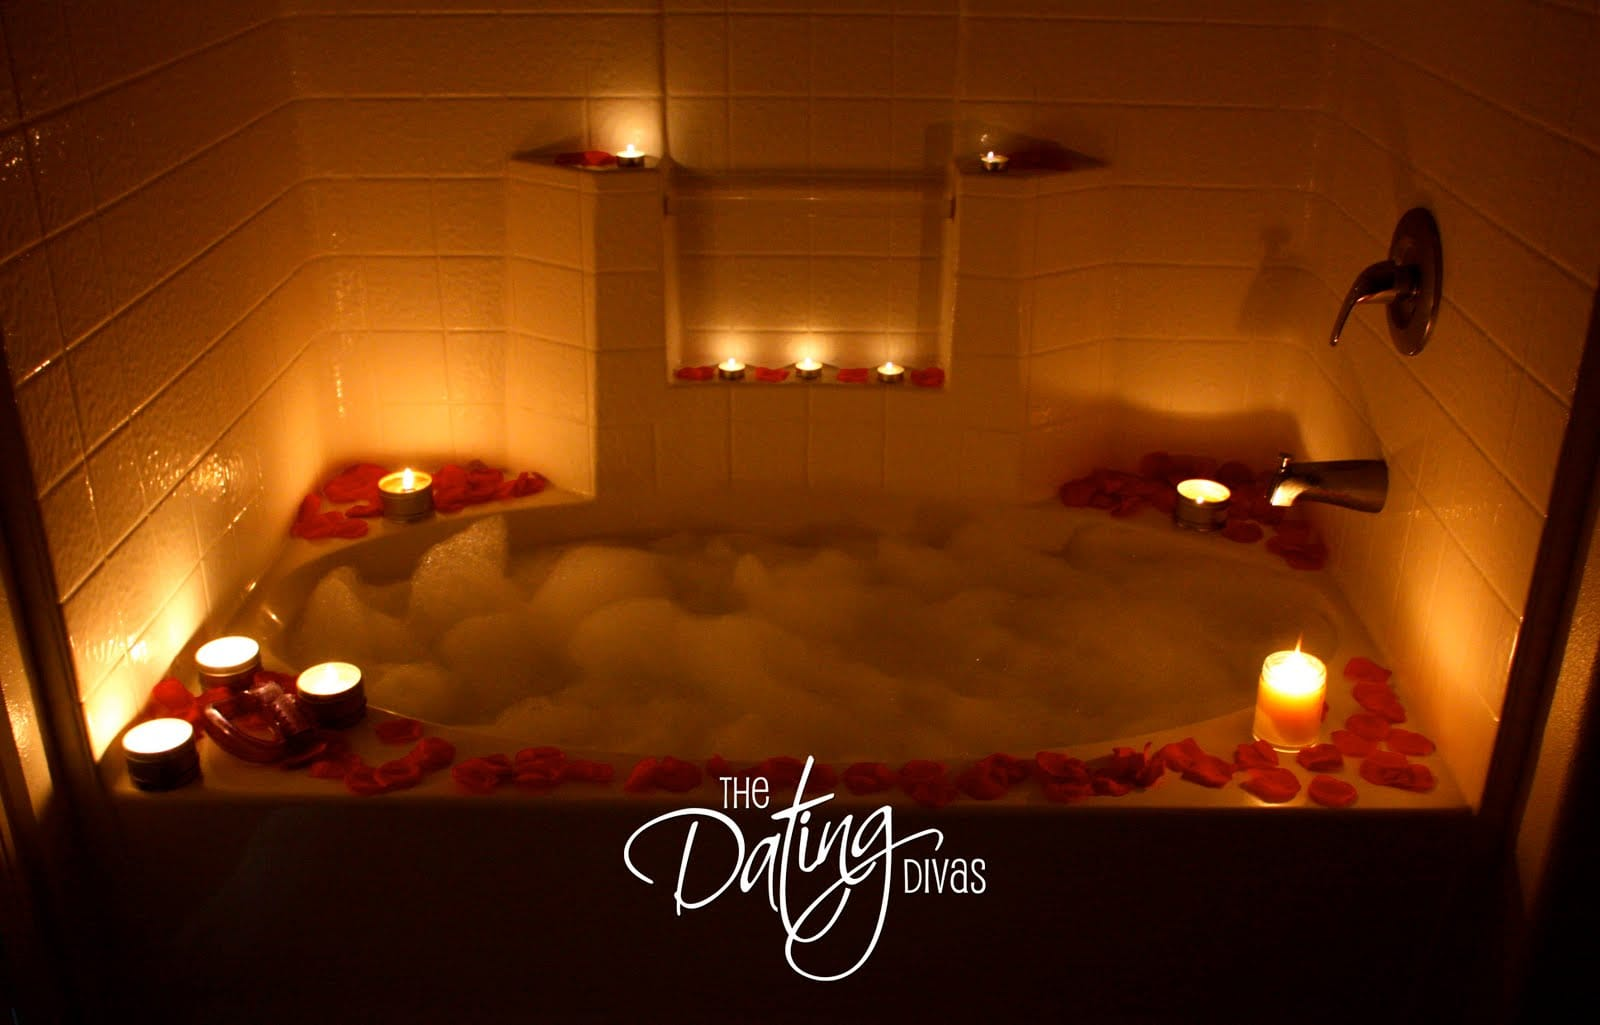 You re. Set The Mood With Rose Petals for Romance with your Spouse